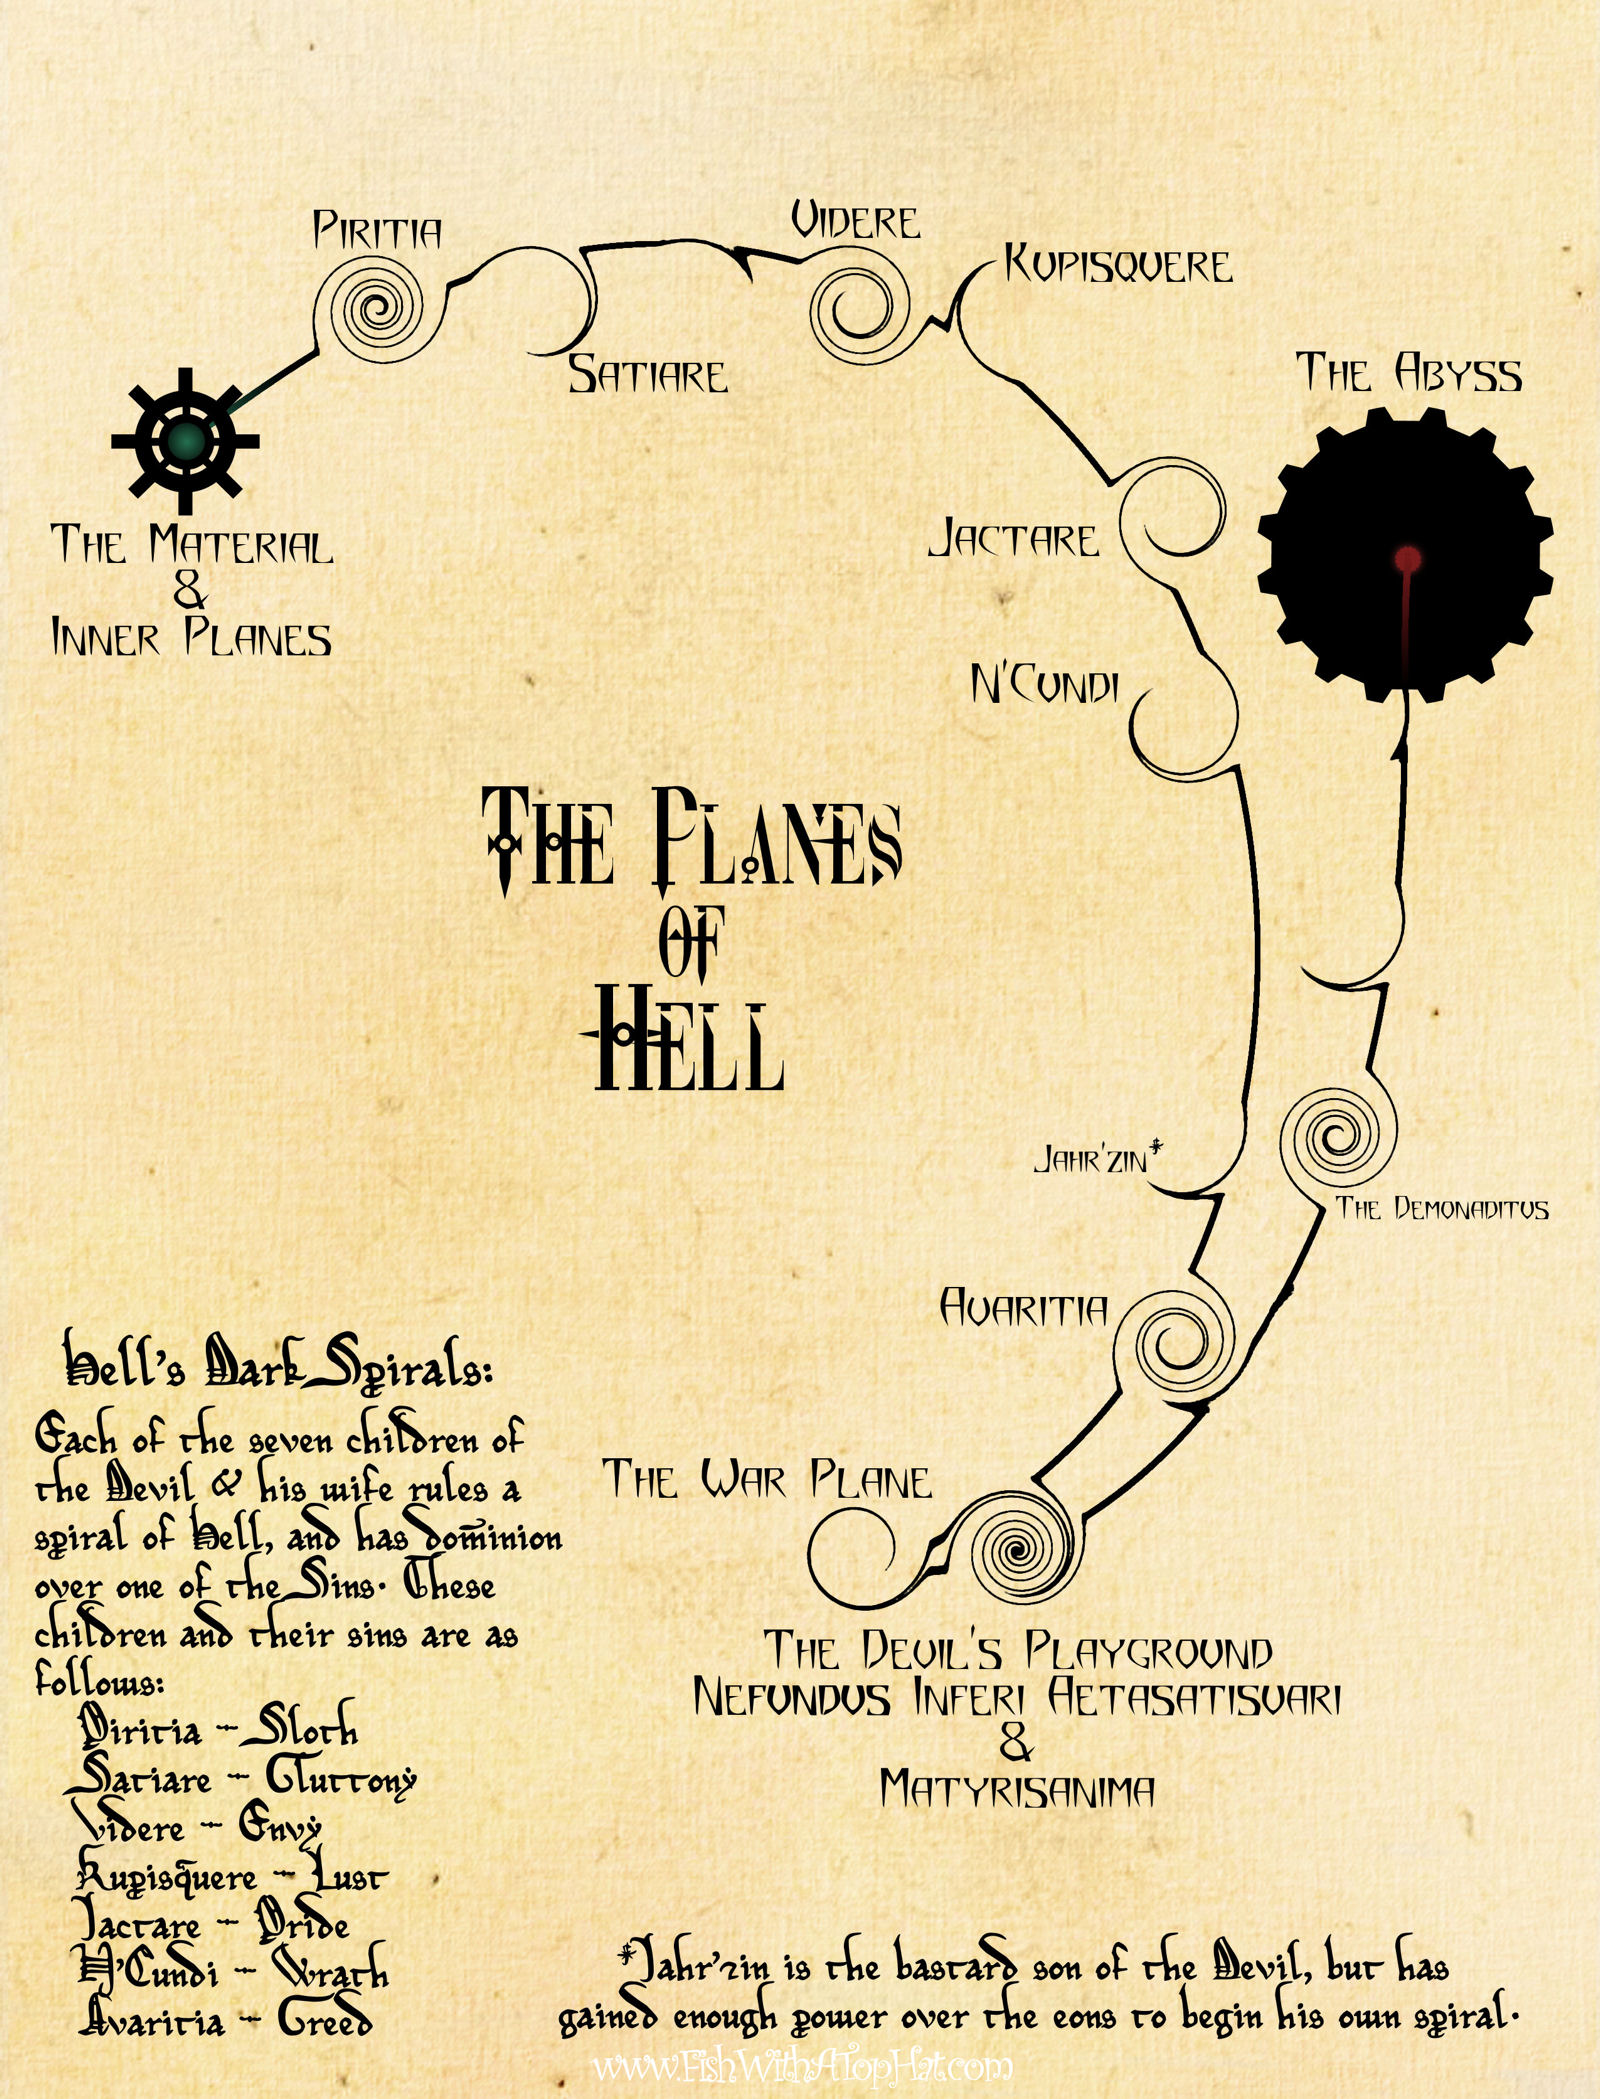 The Planes of Hell